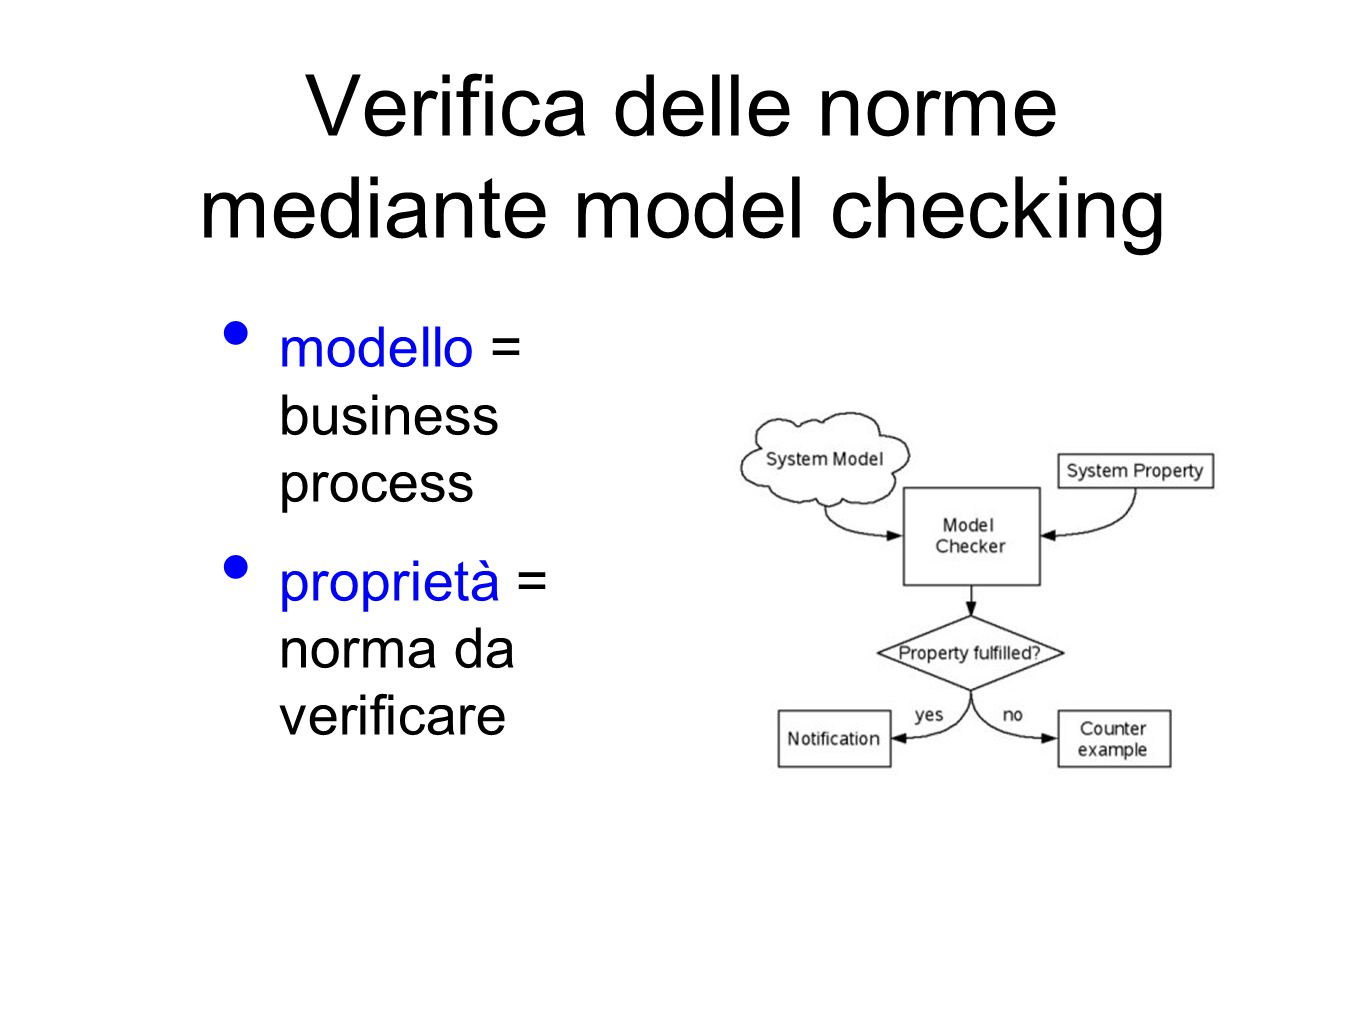 Verifica delle norme mediante model checking